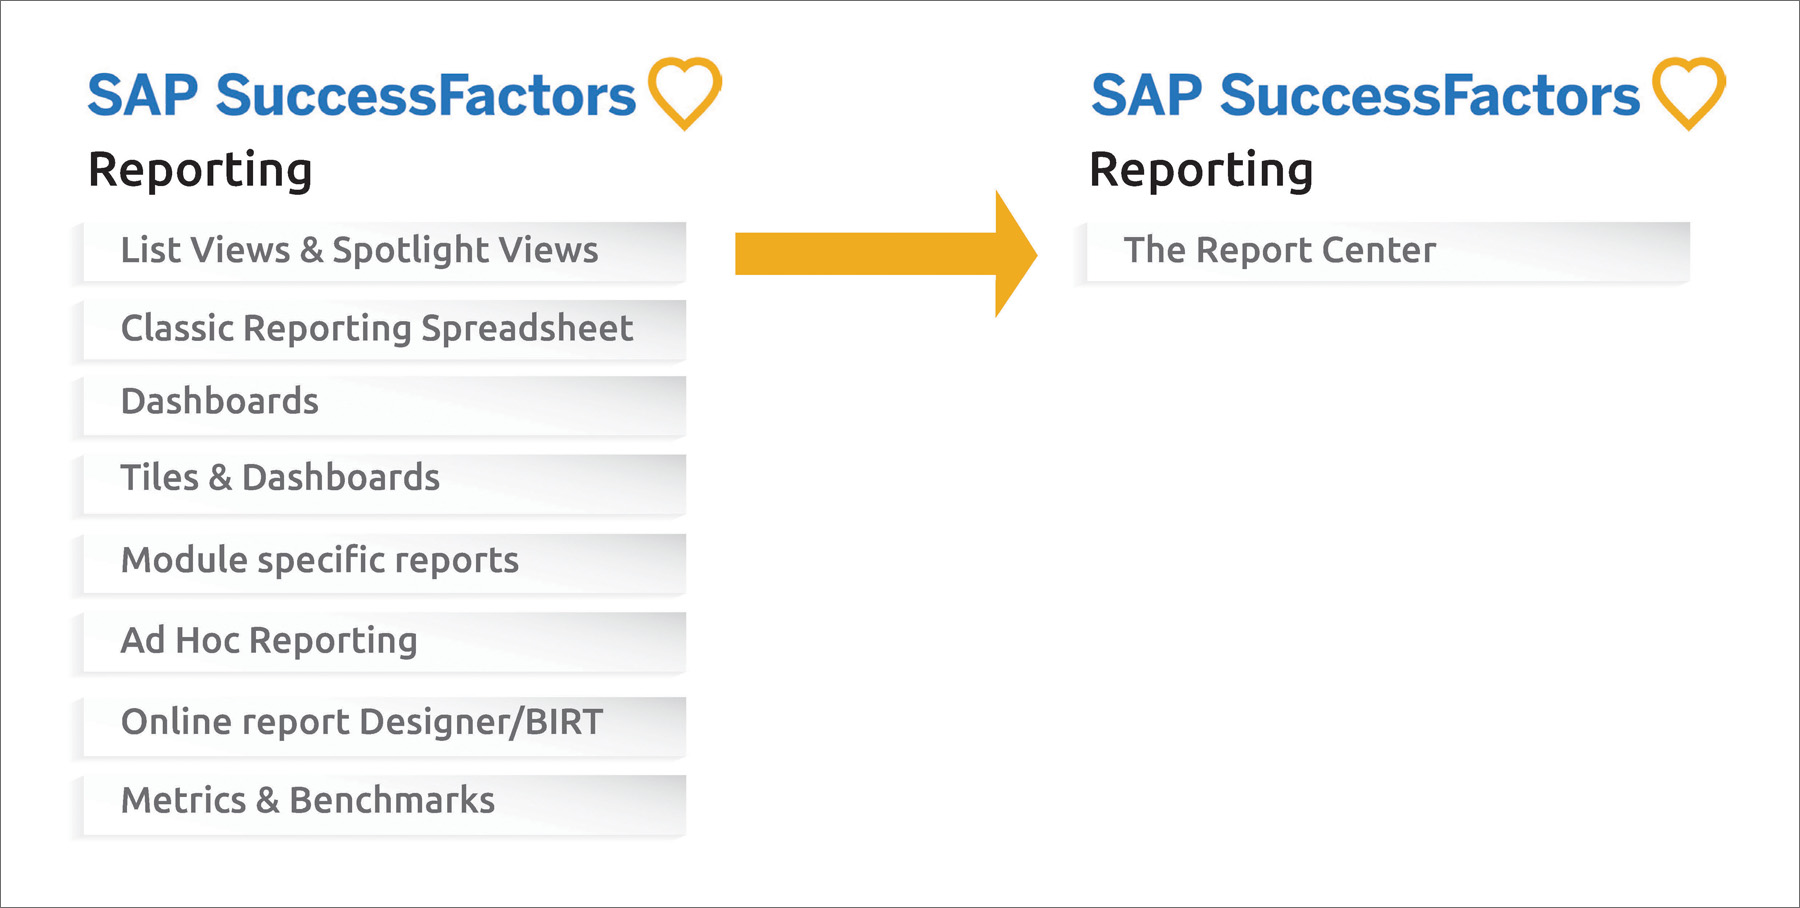 What's New with SuccessFactors Report Center?